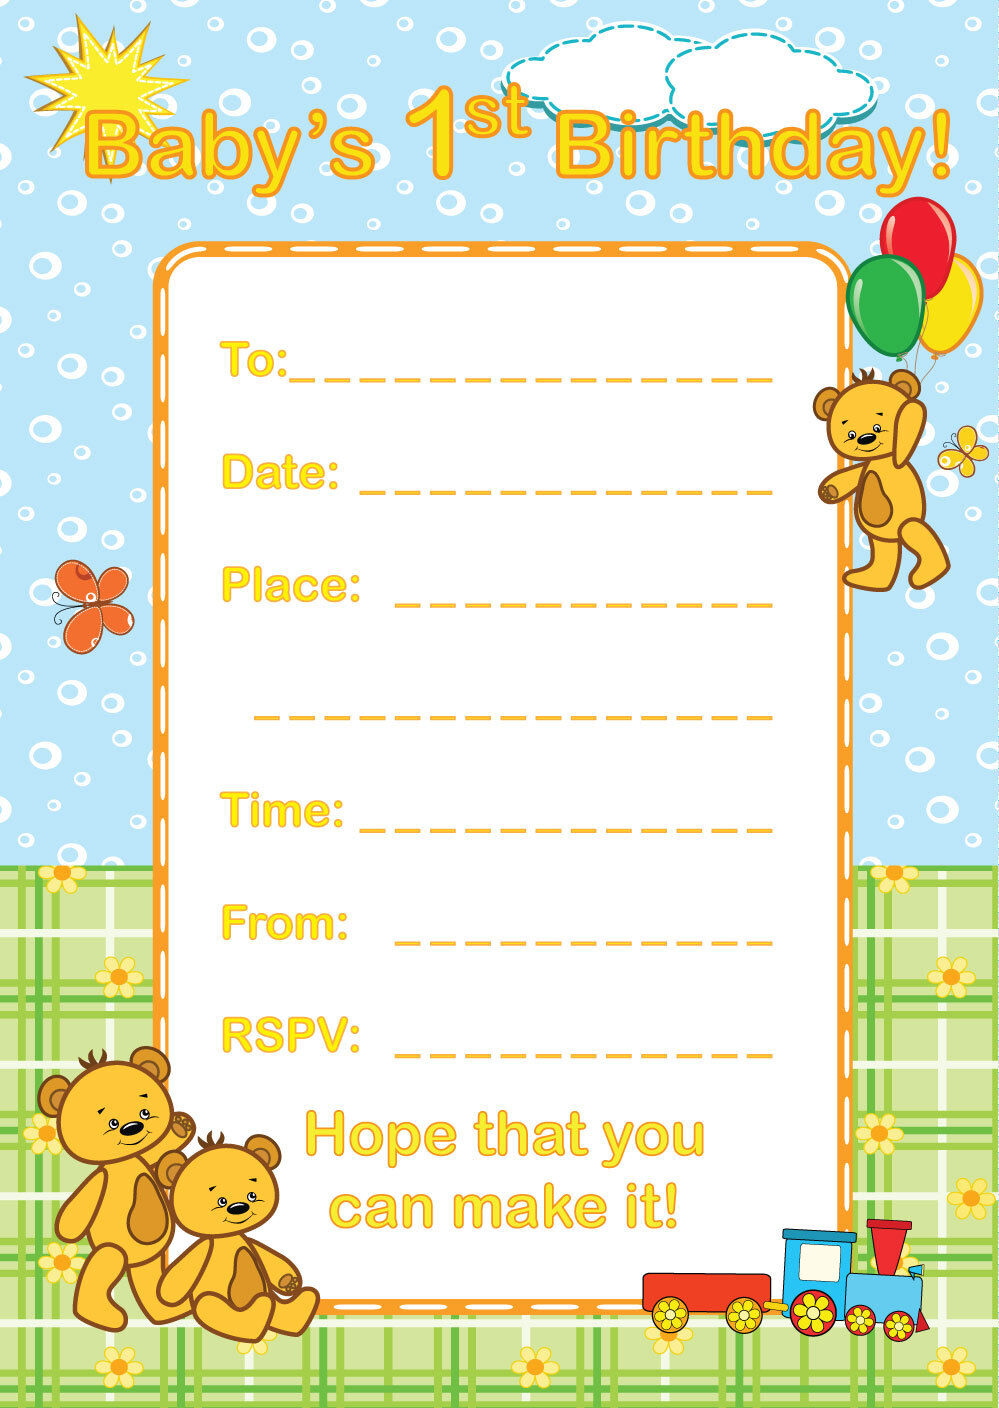 16 A6 Birthday Party Invitations Toddler Baby Blank Invites Animal Themed